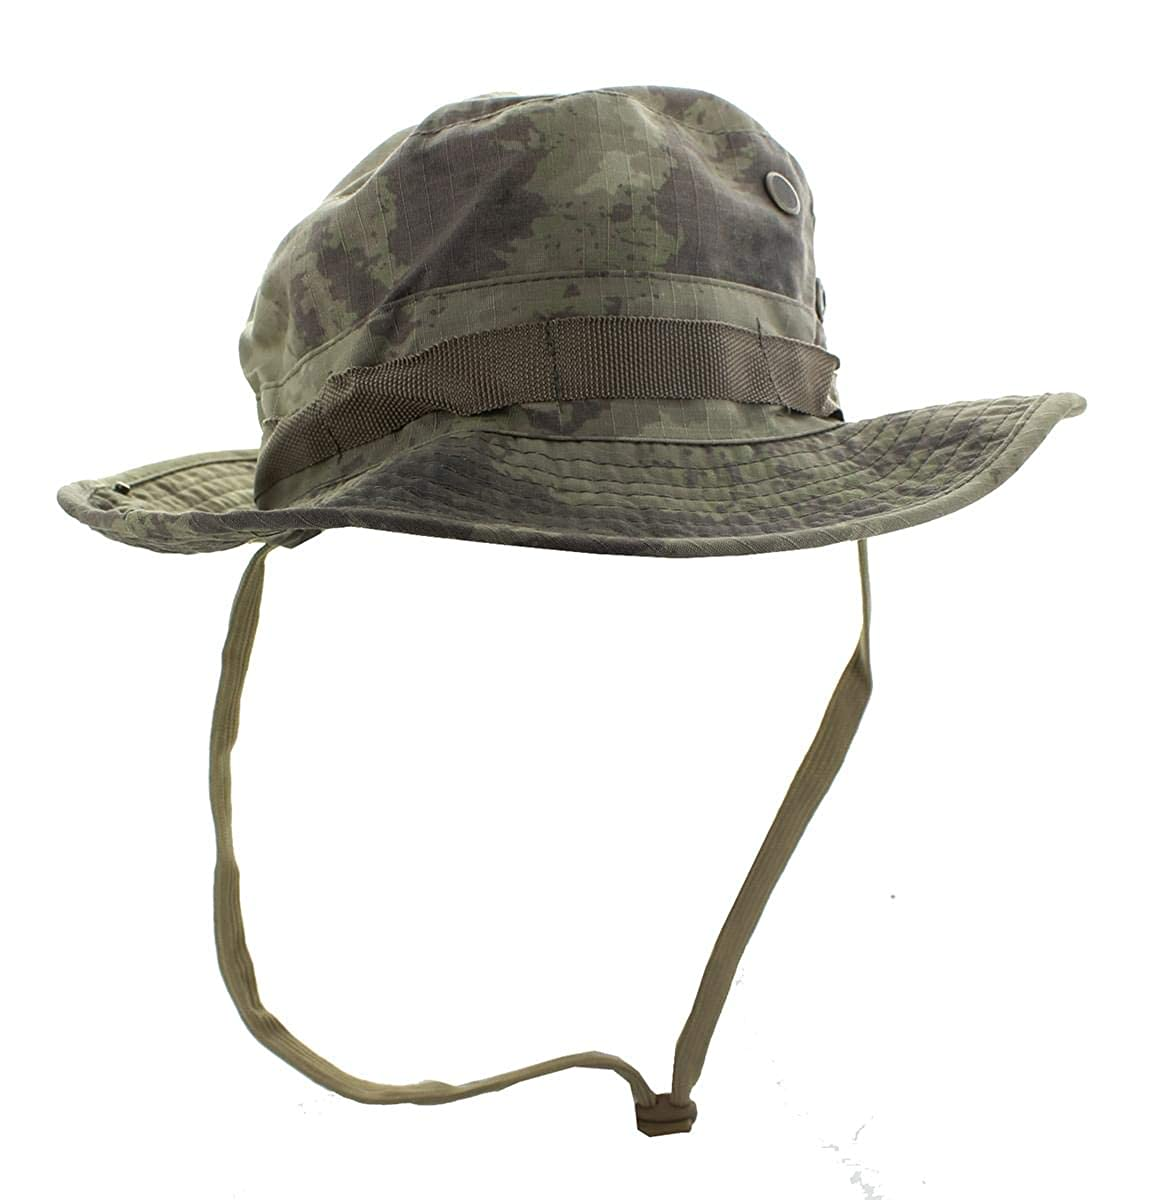 74ddc4a6 Call of Duty Captain Price Bucket Hat Brown at Amazon Men's Clothing store: